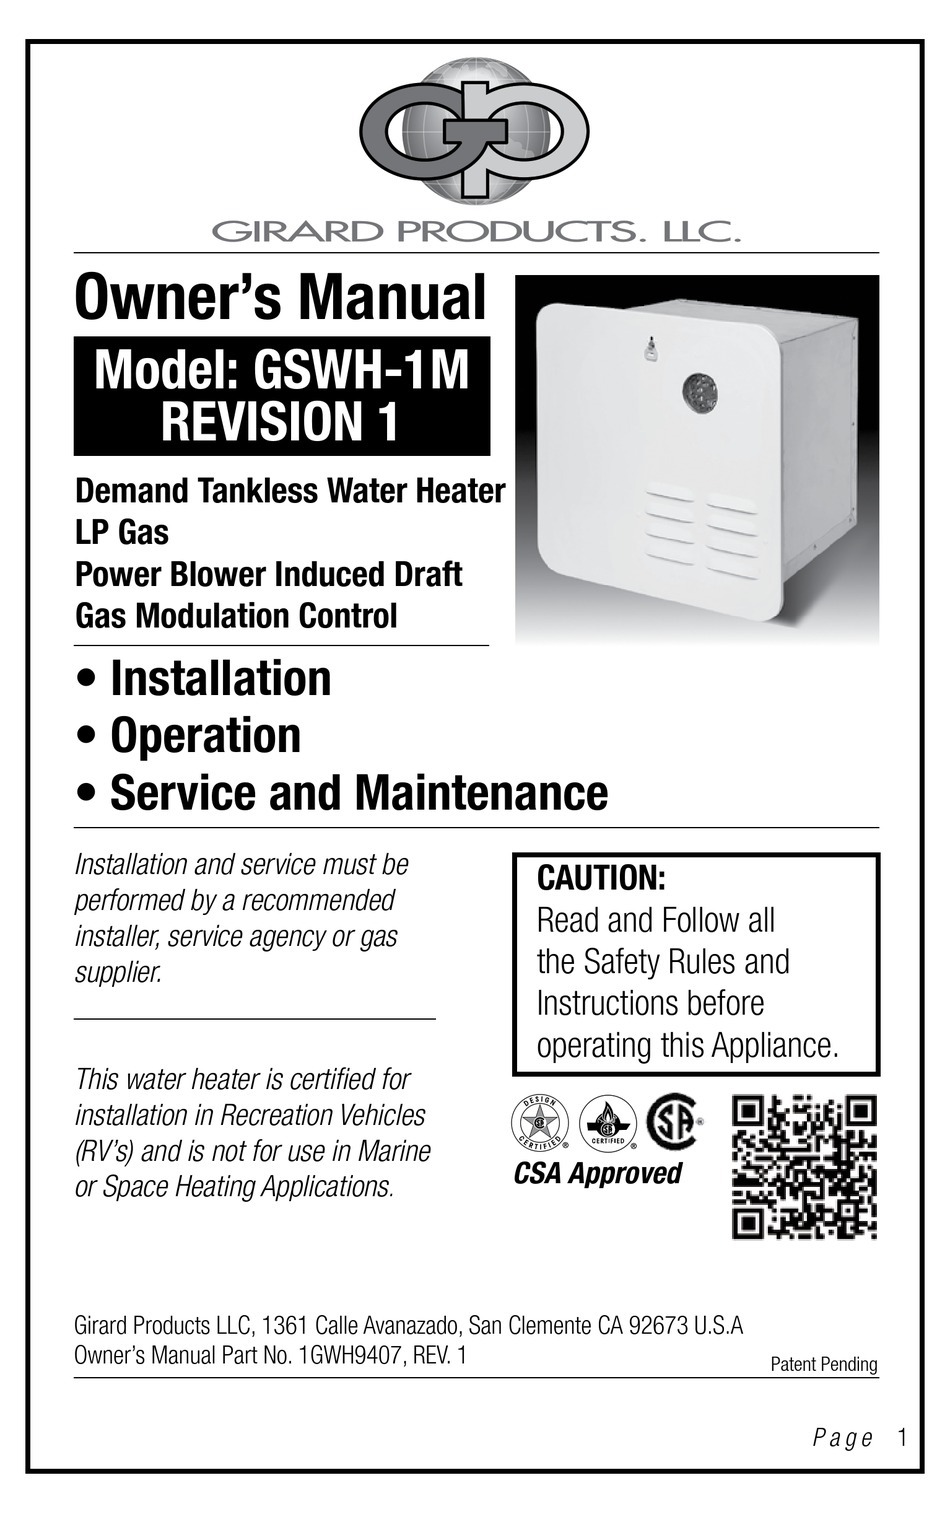 Girard Tankless Water Heater Troubleshooting : girard, tankless, water, heater, troubleshooting, GIRARD, PRODUCTS, GSWH-1M, OWNER'S, MANUAL, Download, ManualsLib